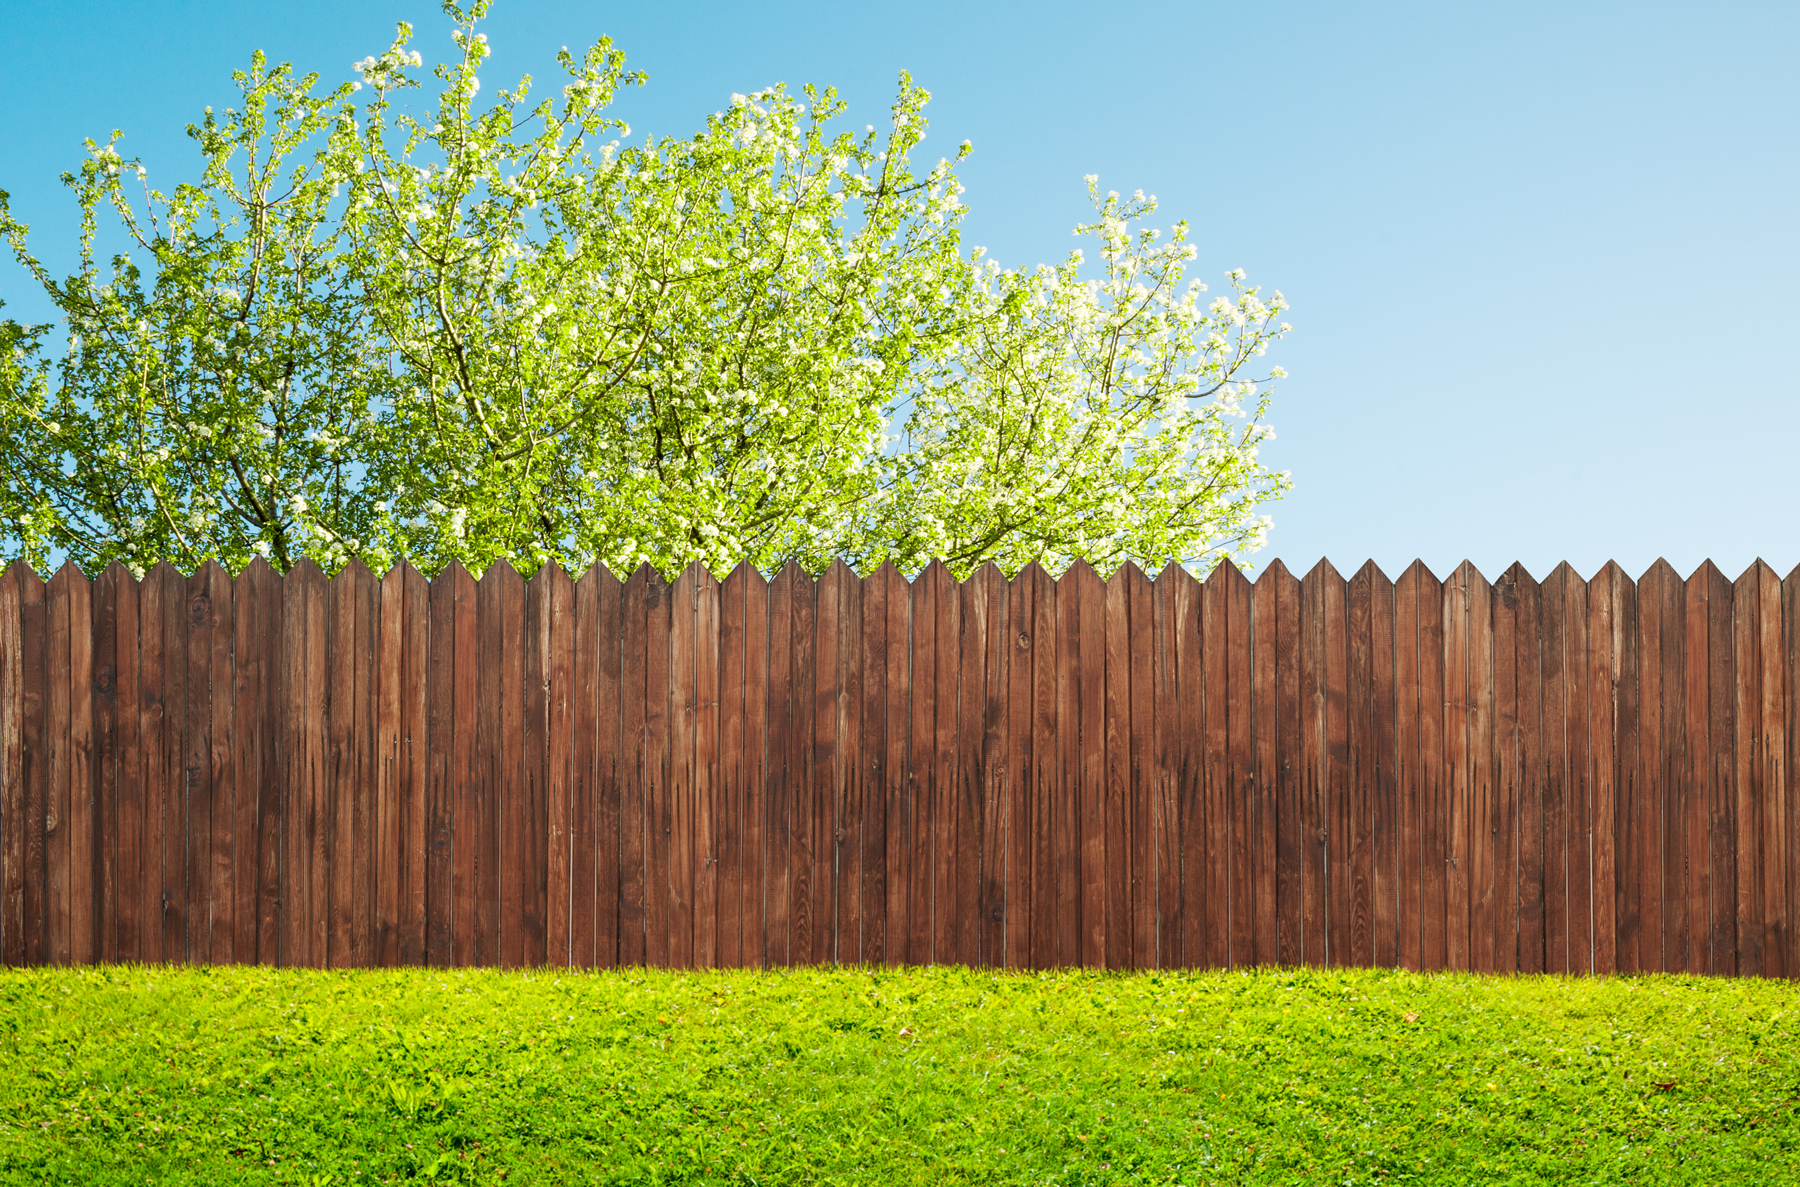 How and when to prepare your lawn for spring: a Green yard